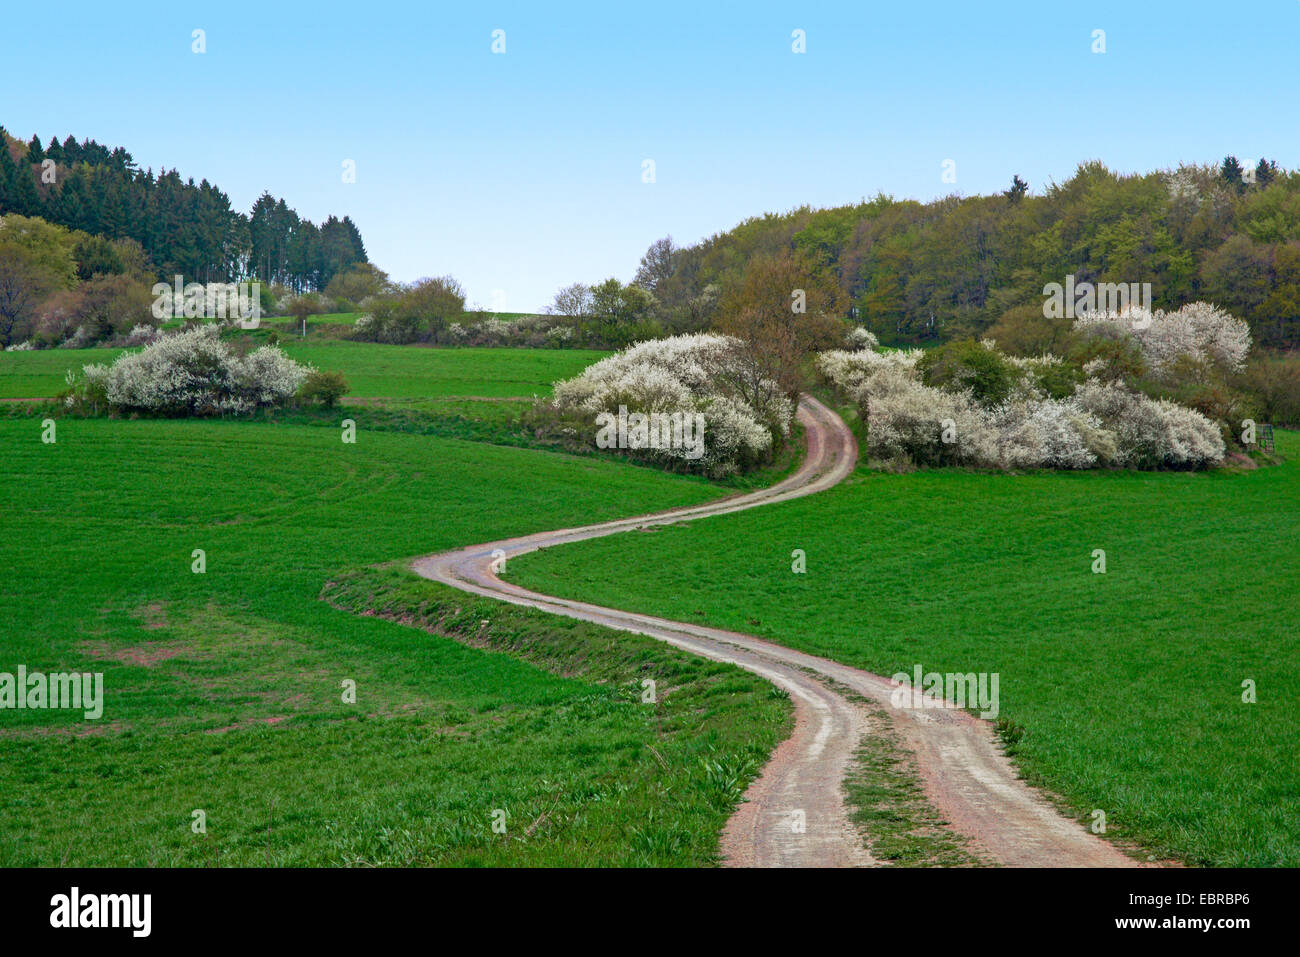 blackthorn, sloe (Prunus spinosa), blooming blackthorns in a meadow landscape with field path, Germany, Rhineland - Stock Image